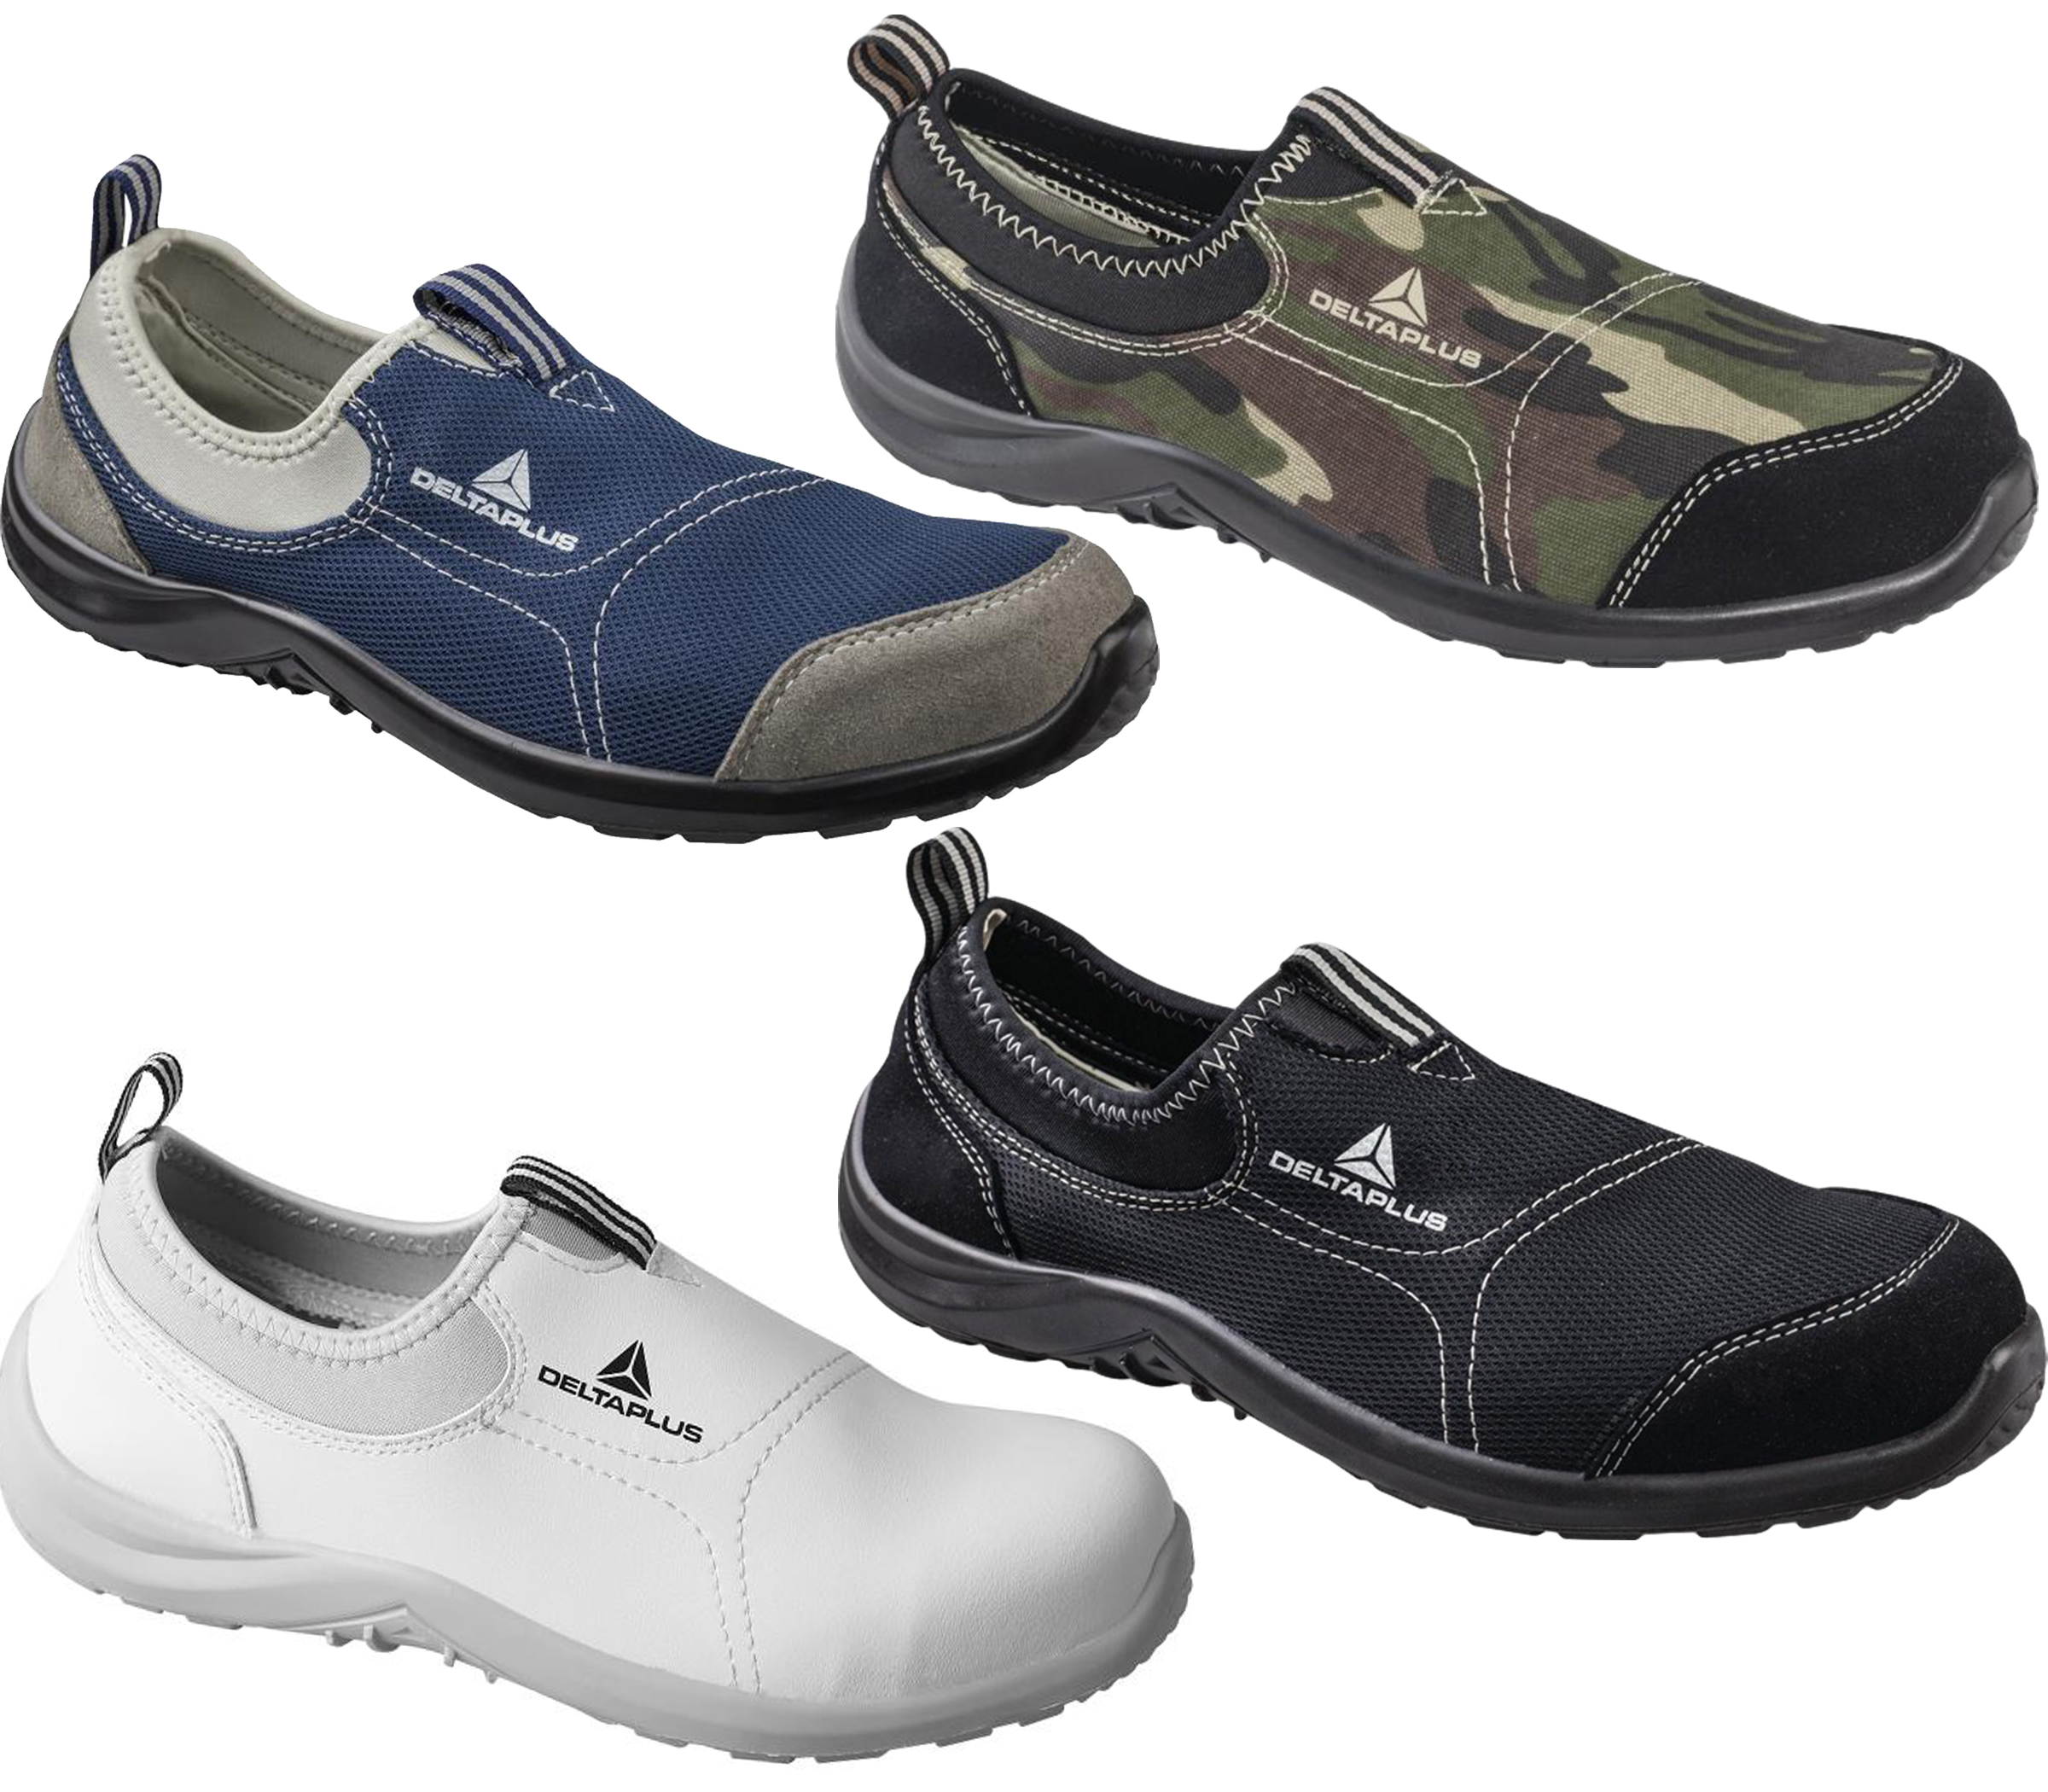 Details about MensWomens Delta Plus Miami Slip On Canvas Safety Steel Toe Shoes Sizes 3 to 13